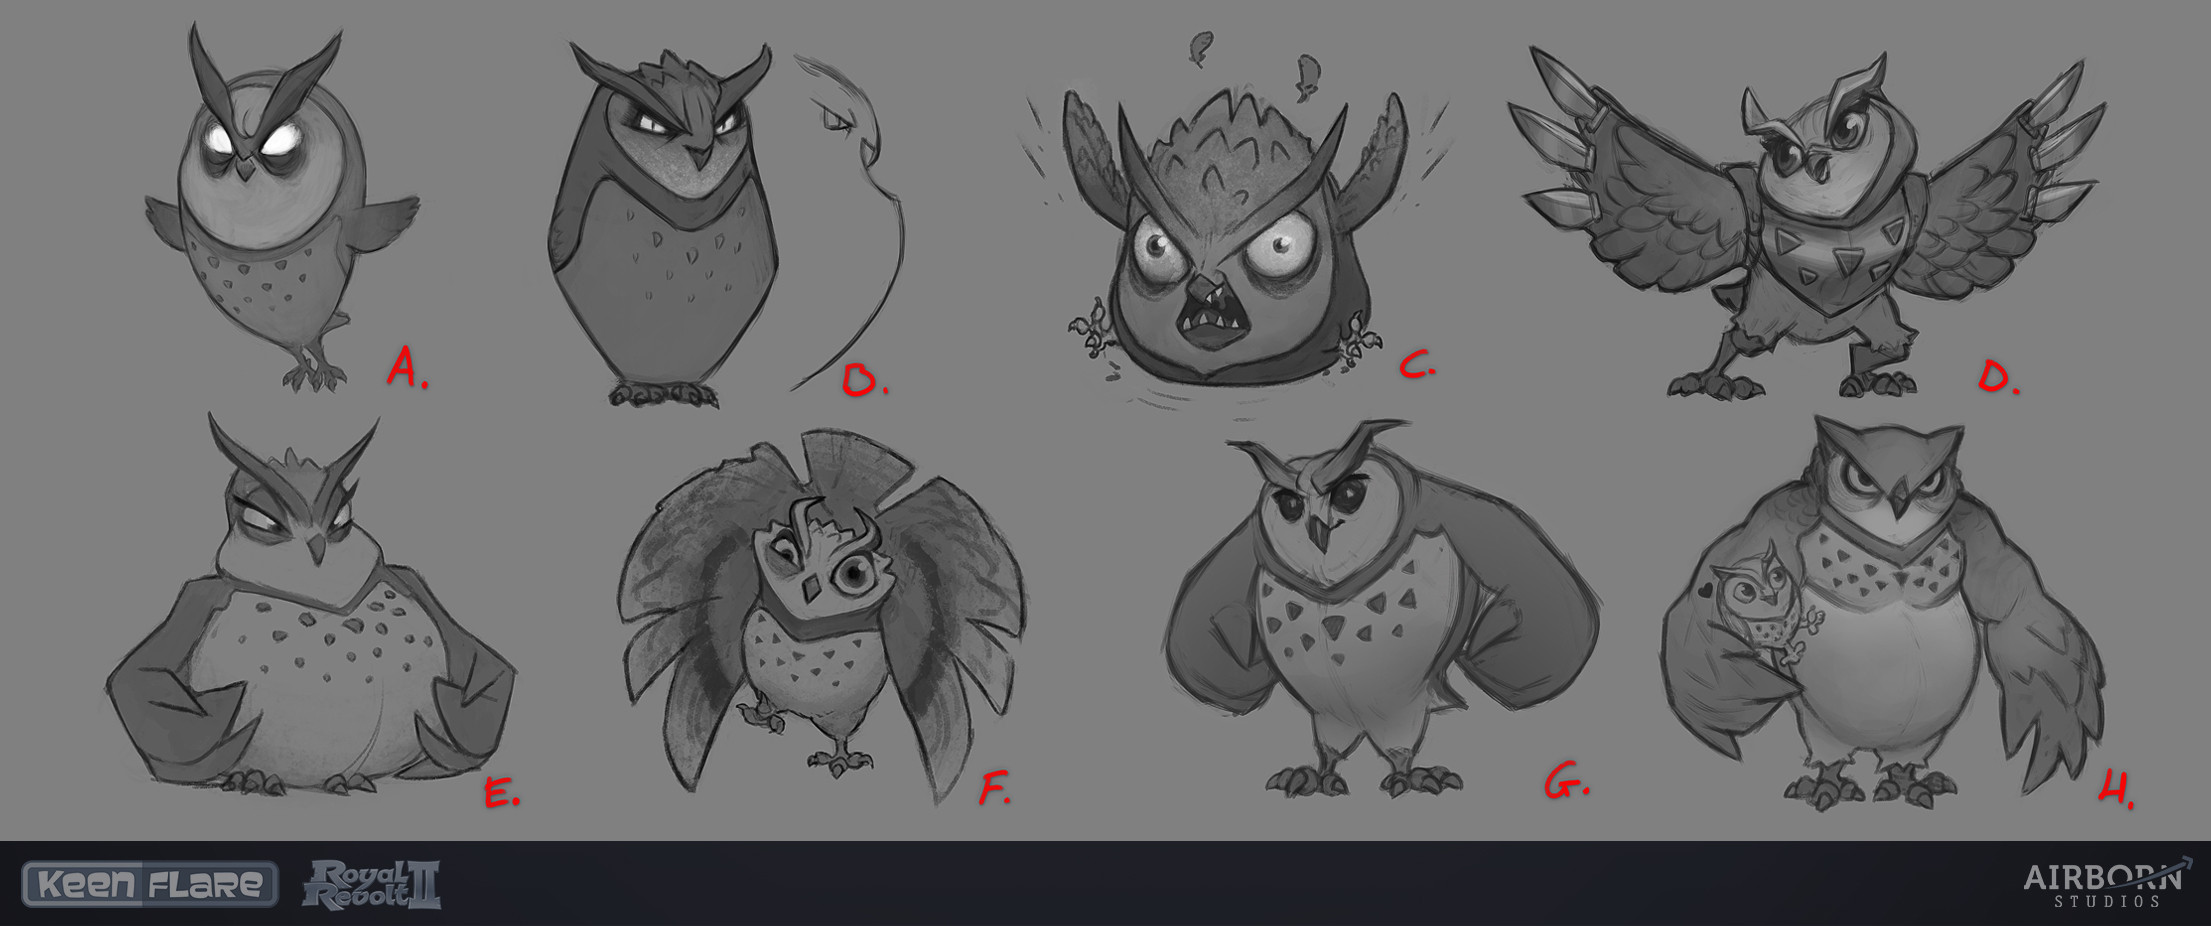 Royal Revolt 2: Twisted Archimedes sketches by Mario Manzanares